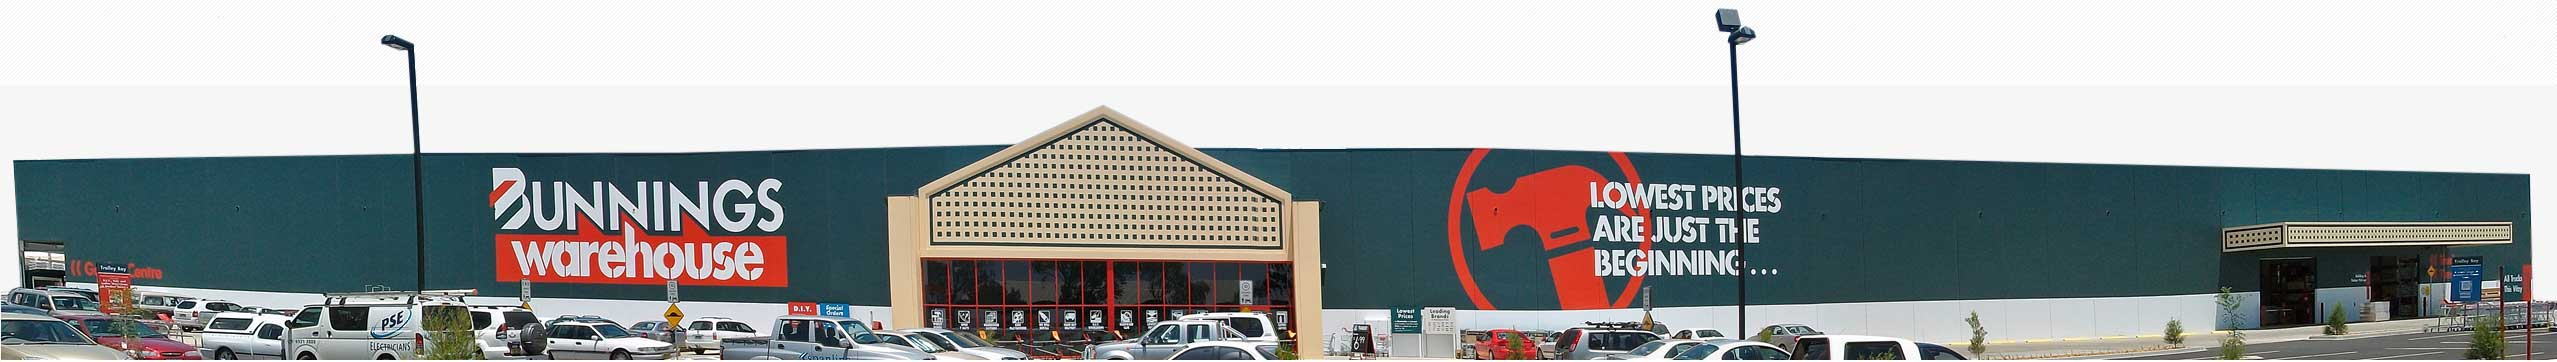 bunnings warehouse store